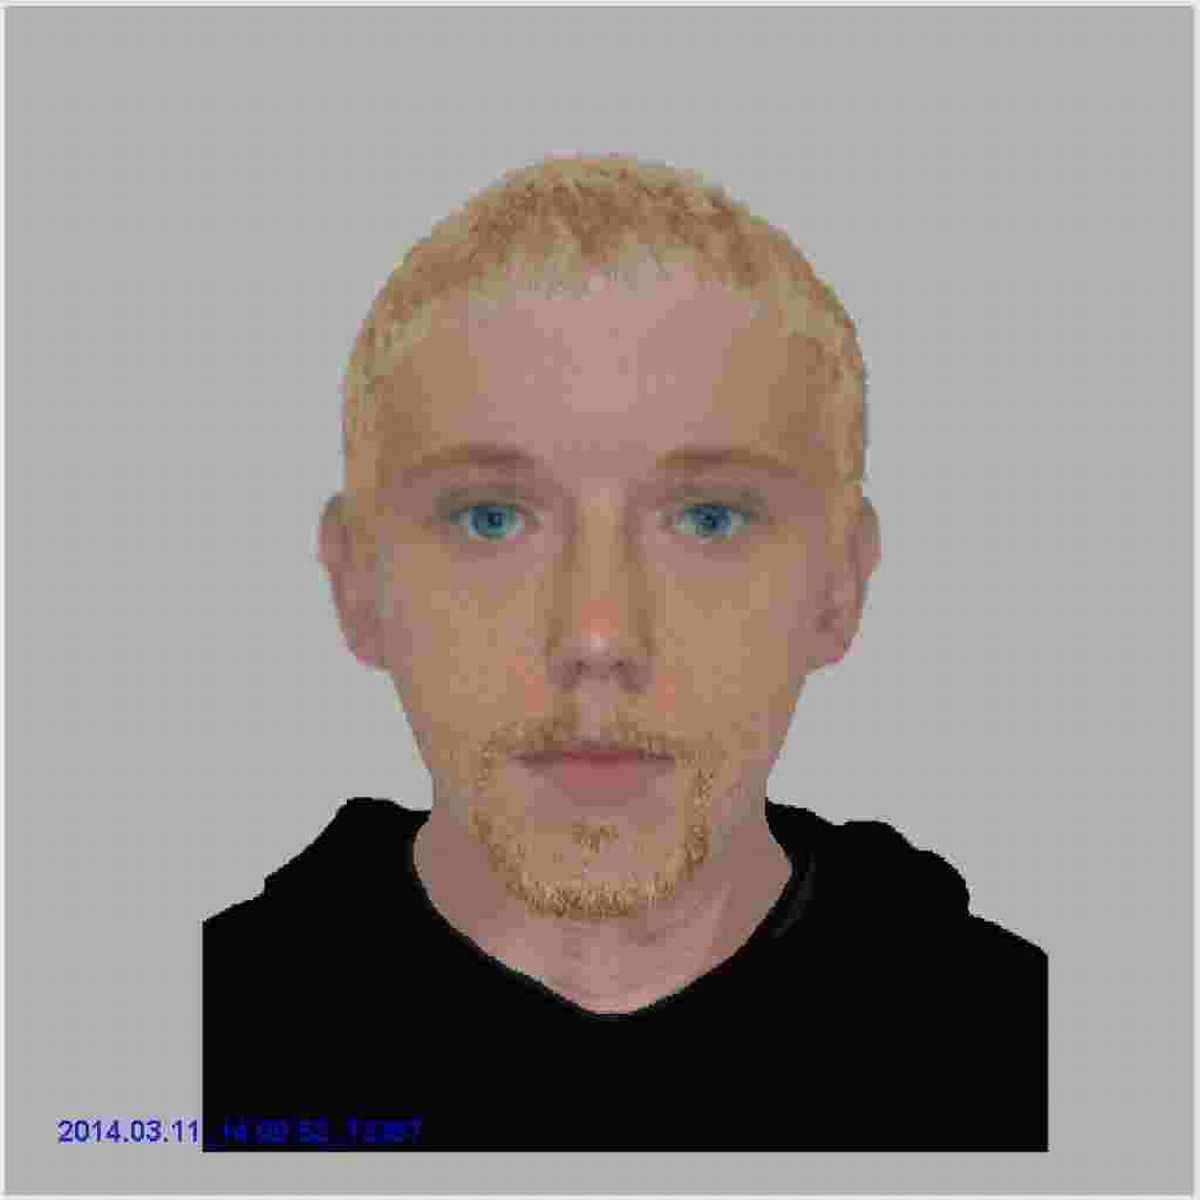 The man is described as white, in his mid 20's, 5ft 7ins tall, of a thin build with slightly wavy blonde/brown short hair.